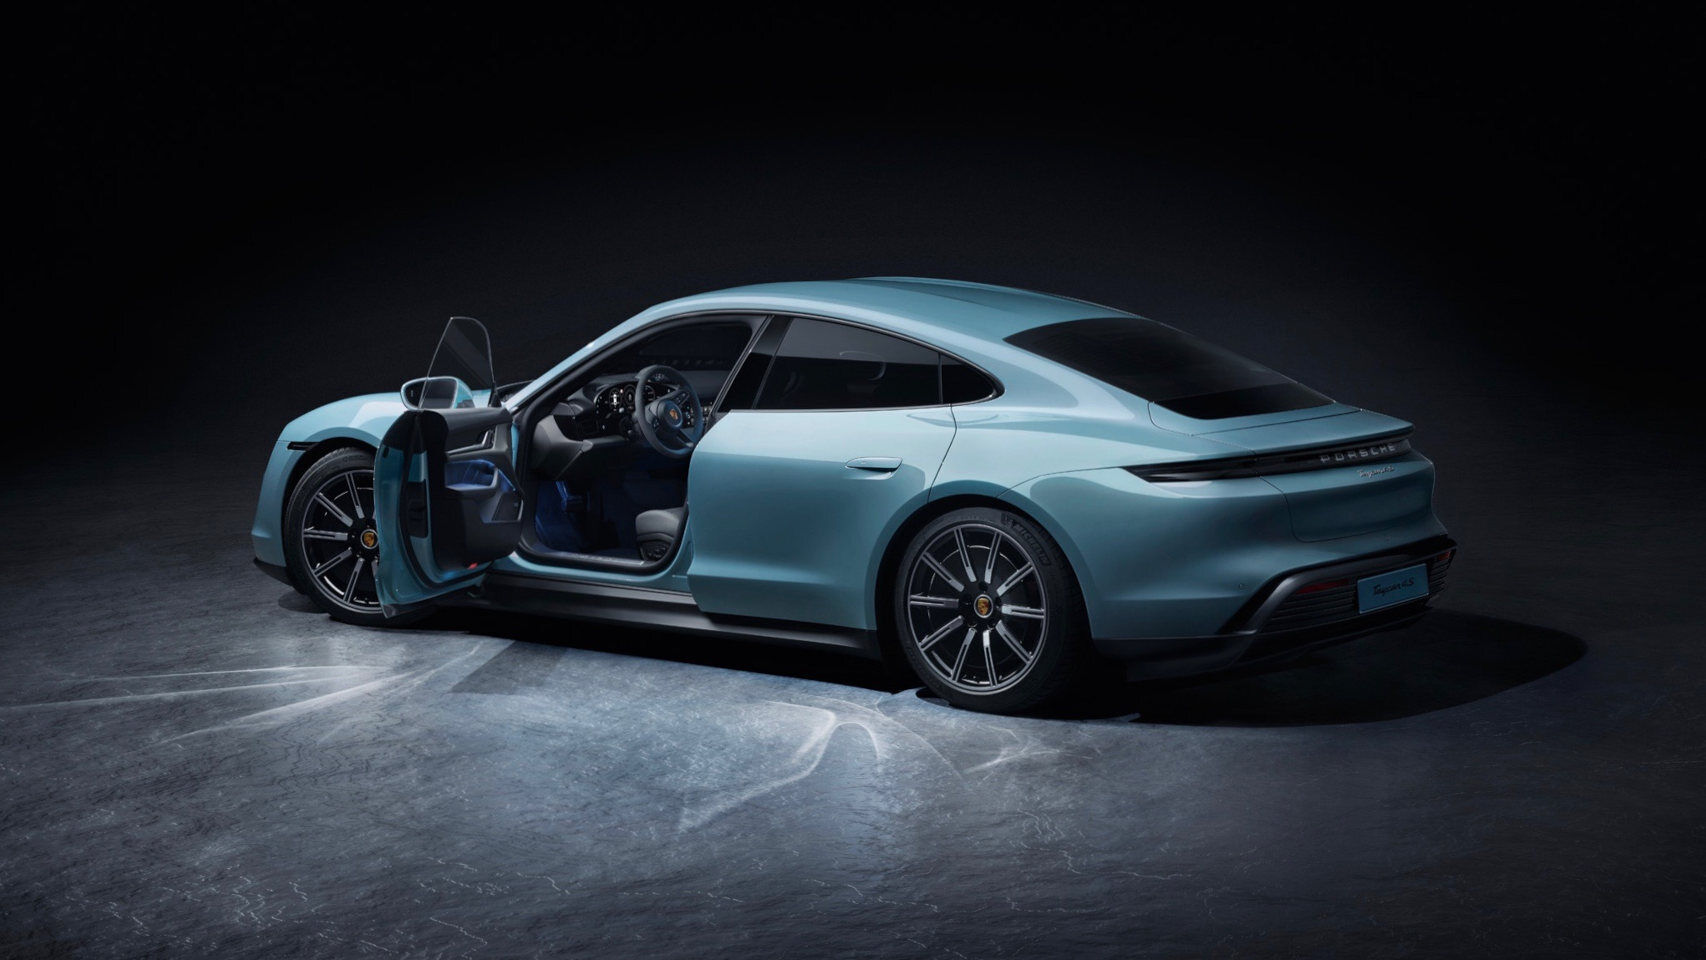 Porsche presents by surprise an electric that will make life difficult for Tesla